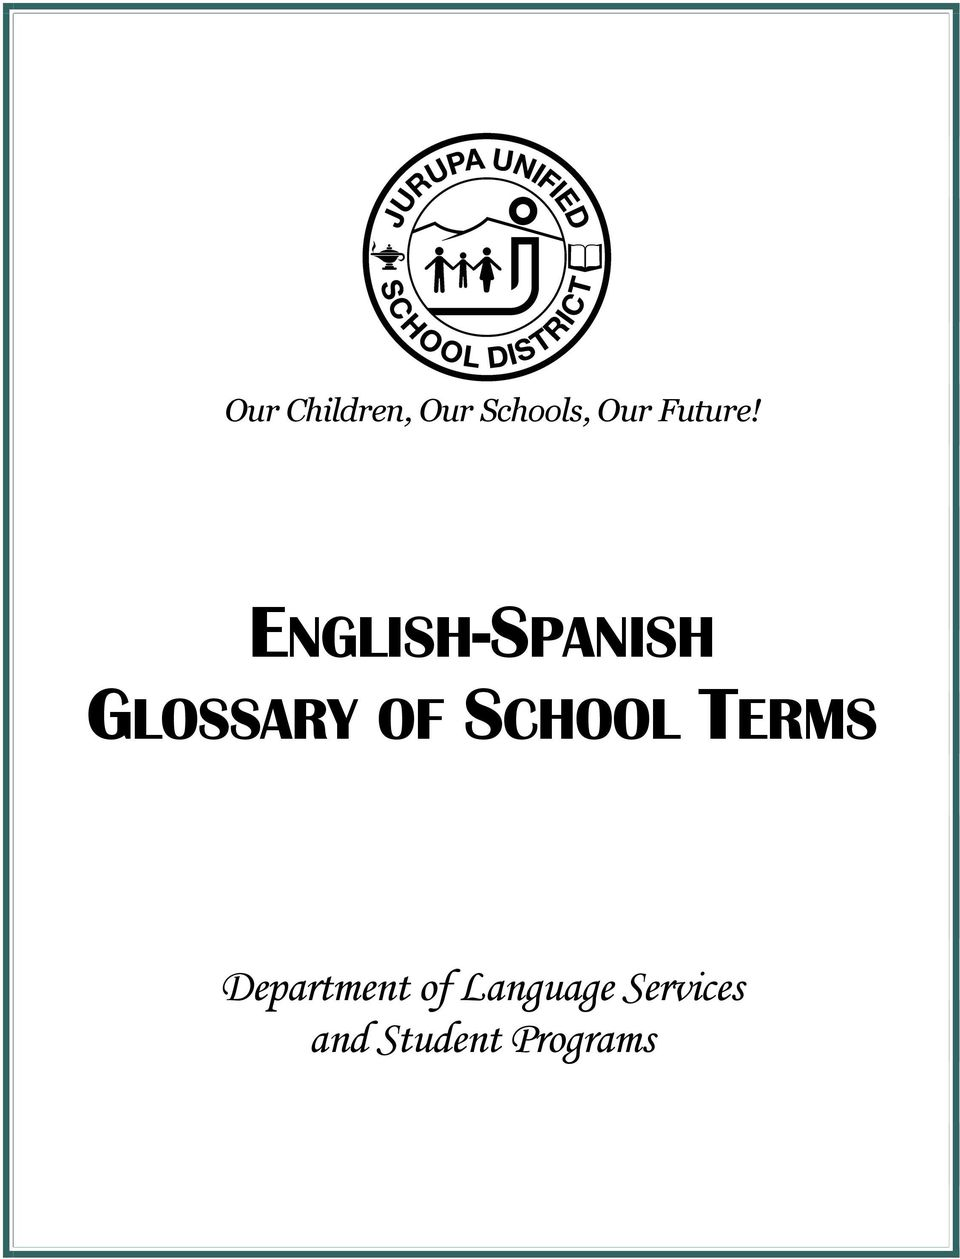 ENGLISH-SPANISH GLOSSARY OF